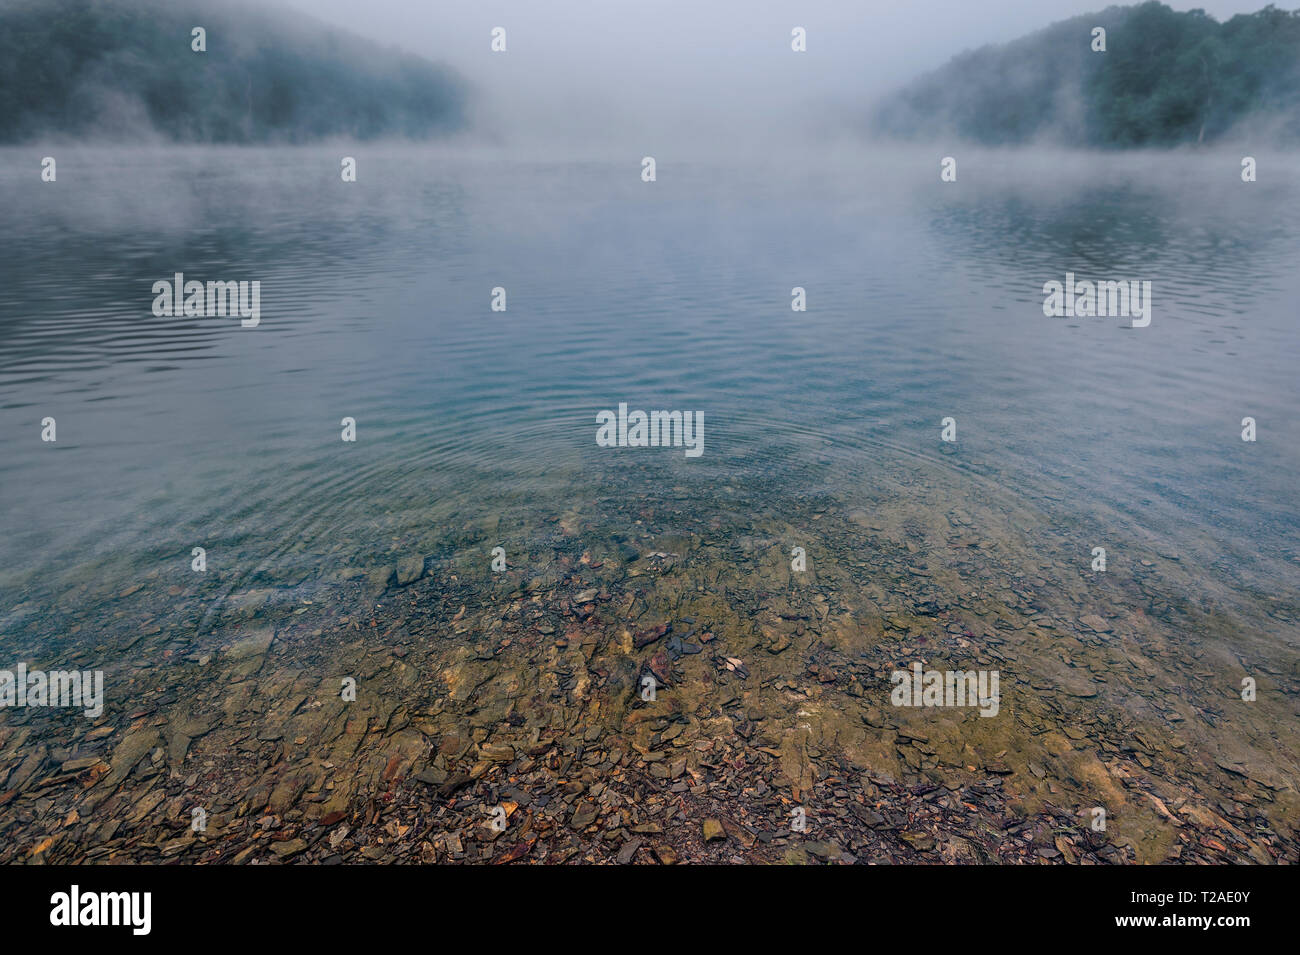 Ripples On Clear Mountain Lake With Misty Fog - Stock Image